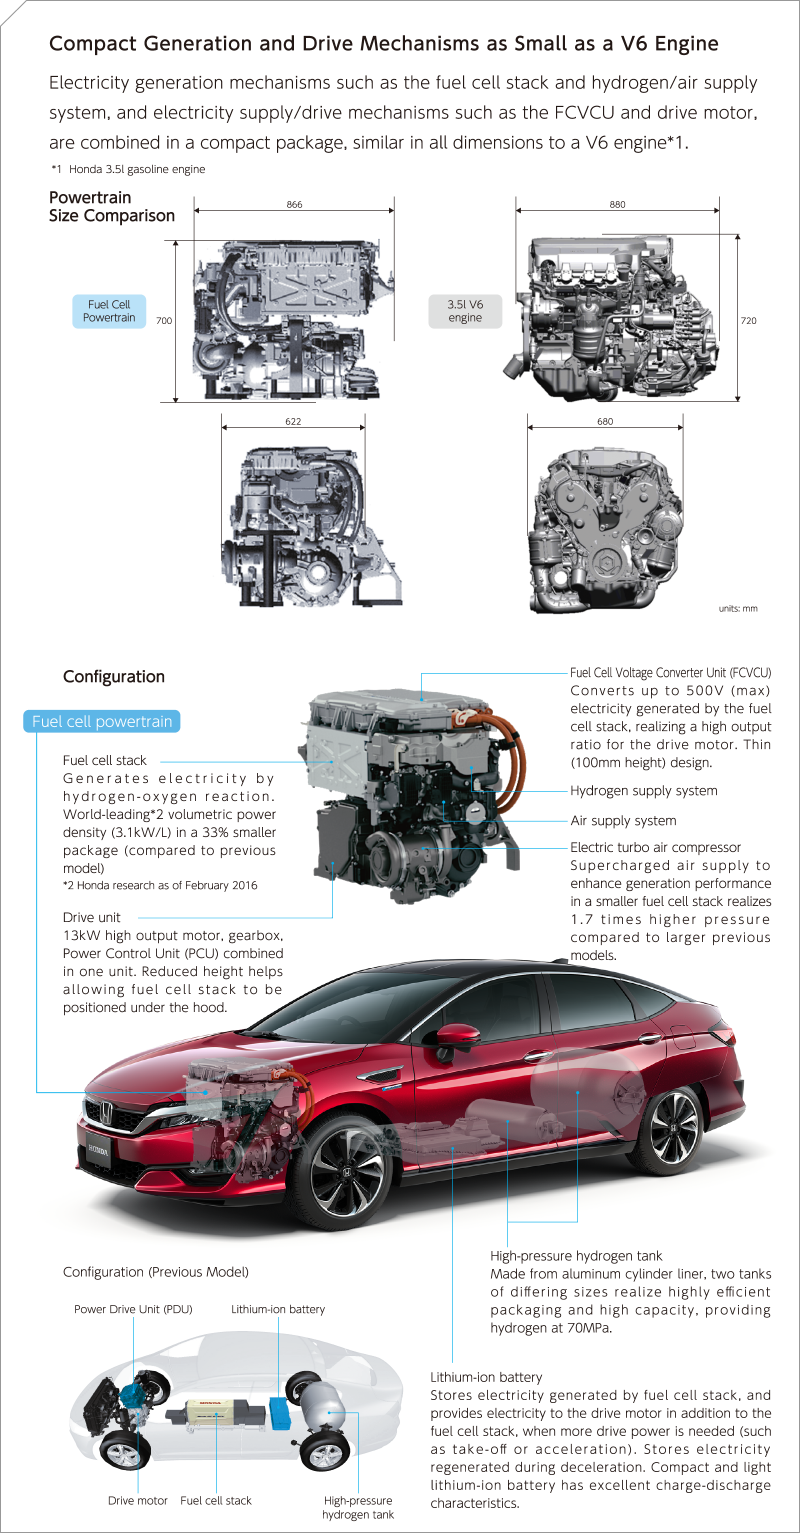 Compact Generation and Drive Mechanisms as Small as a V6 Engine